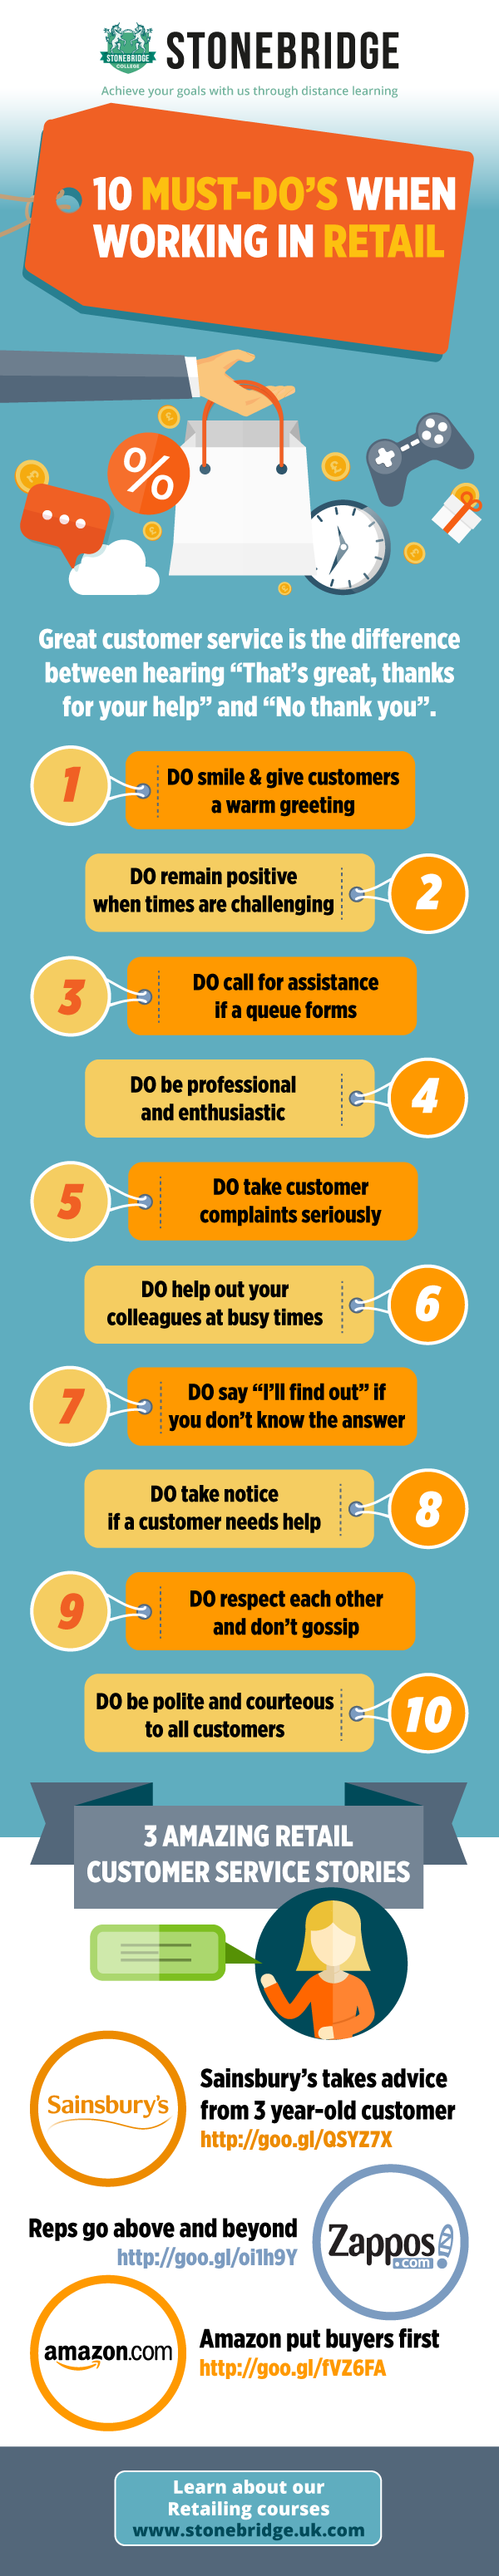 Give great customer service in retail infographic